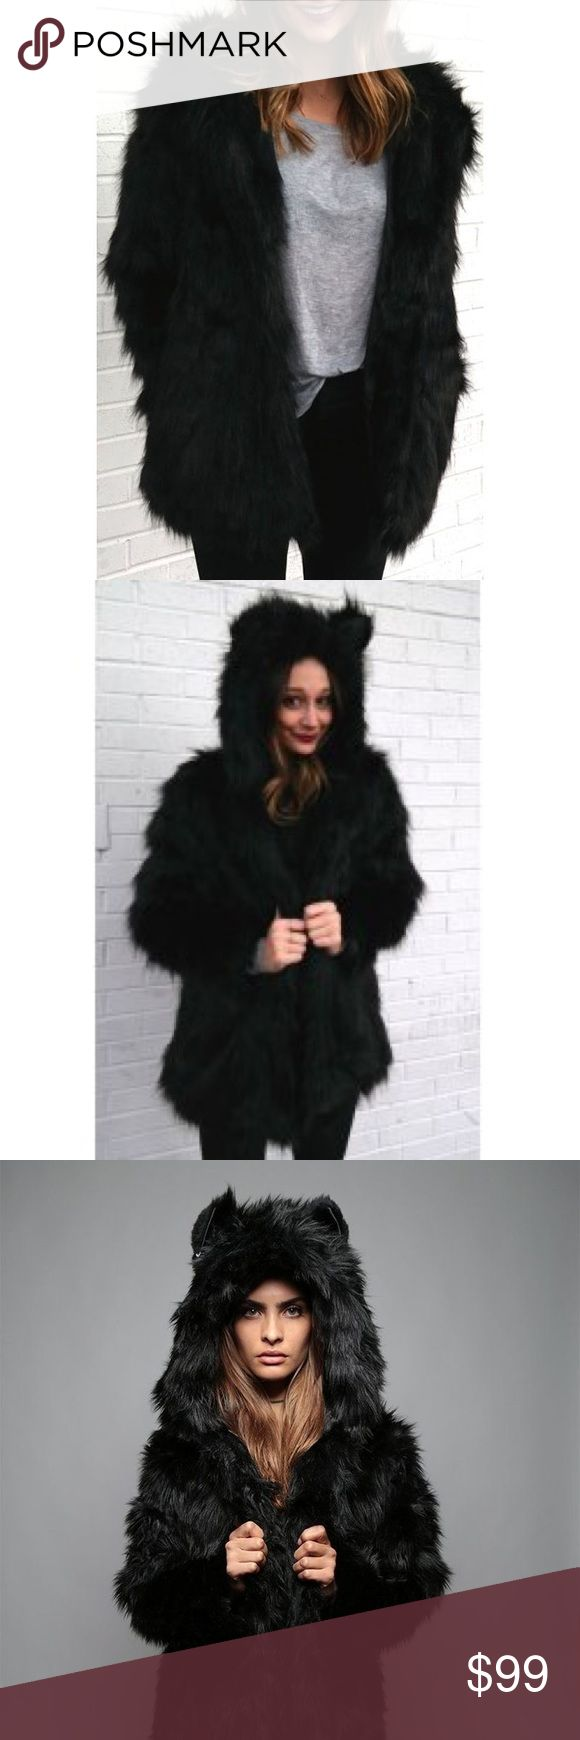 Black Faux Fur Bear Jacket Fabulous black faux fur snuggle jacket with adorable bear ears on the hood; purchased from an online boutique in size xxl but it runs a bit small in my bust. I'm labeling it as large/xl. Measurements and more photos to come. The perfect cozy coat; exact coat in the first two stock photos, the other two are the same jacket with wolf ears. Brand new but untagged as it was an online purchase. Never worn. Jackets & Coats